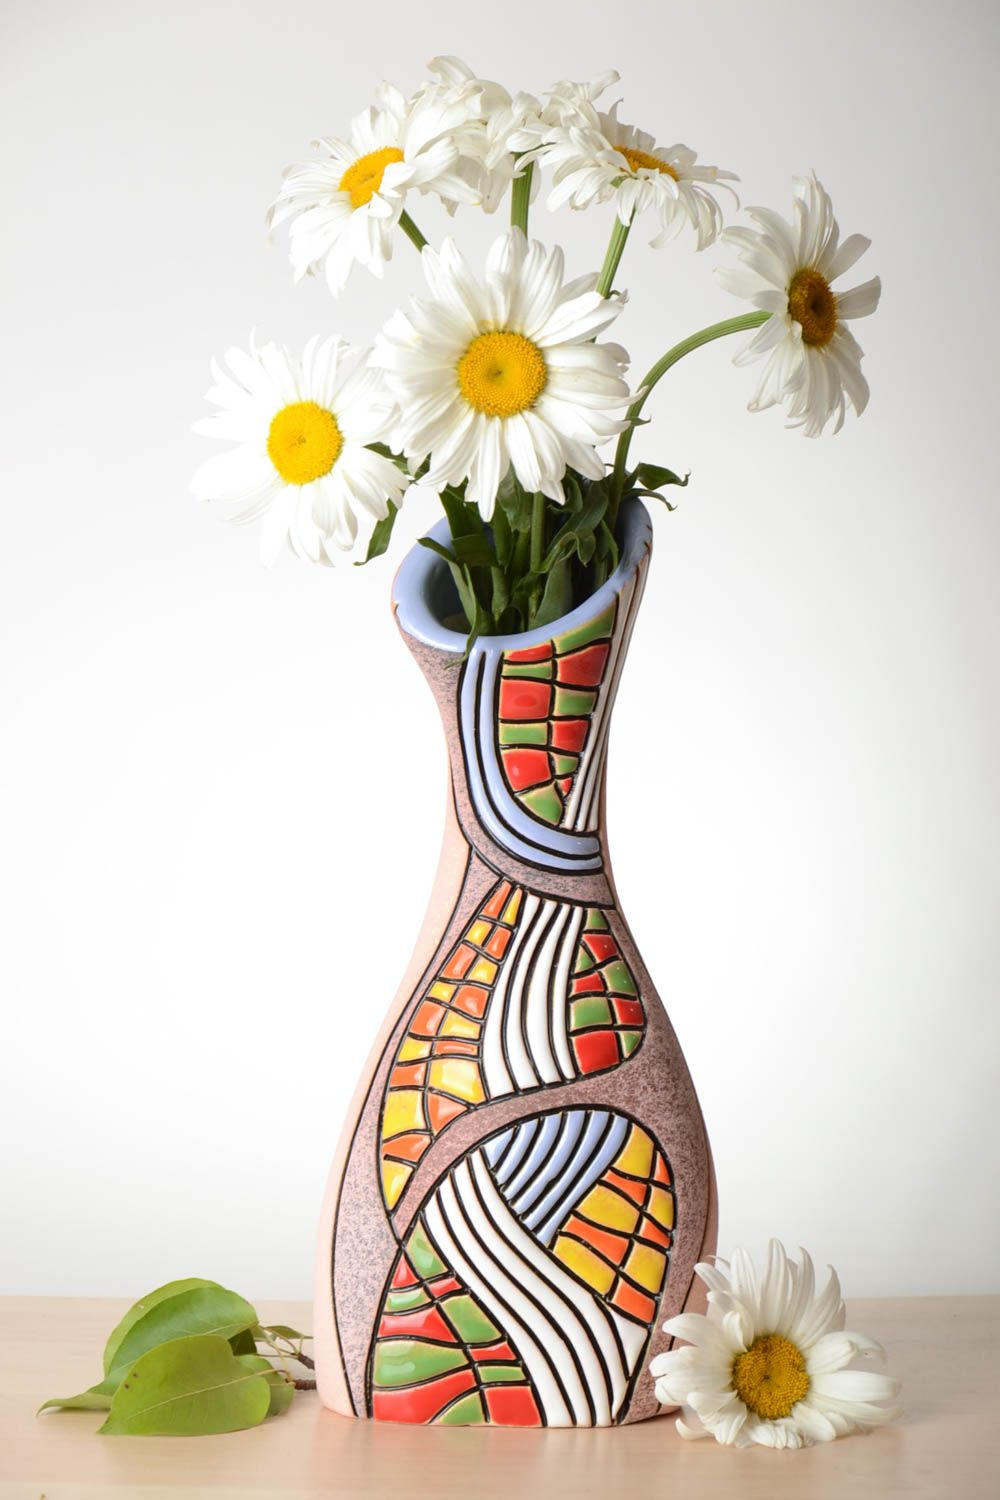 Vases Beautiful Handmade Ceramic Flower Vase Pottery Works Clay Vase Design  Gift Ideas   MADEheart.